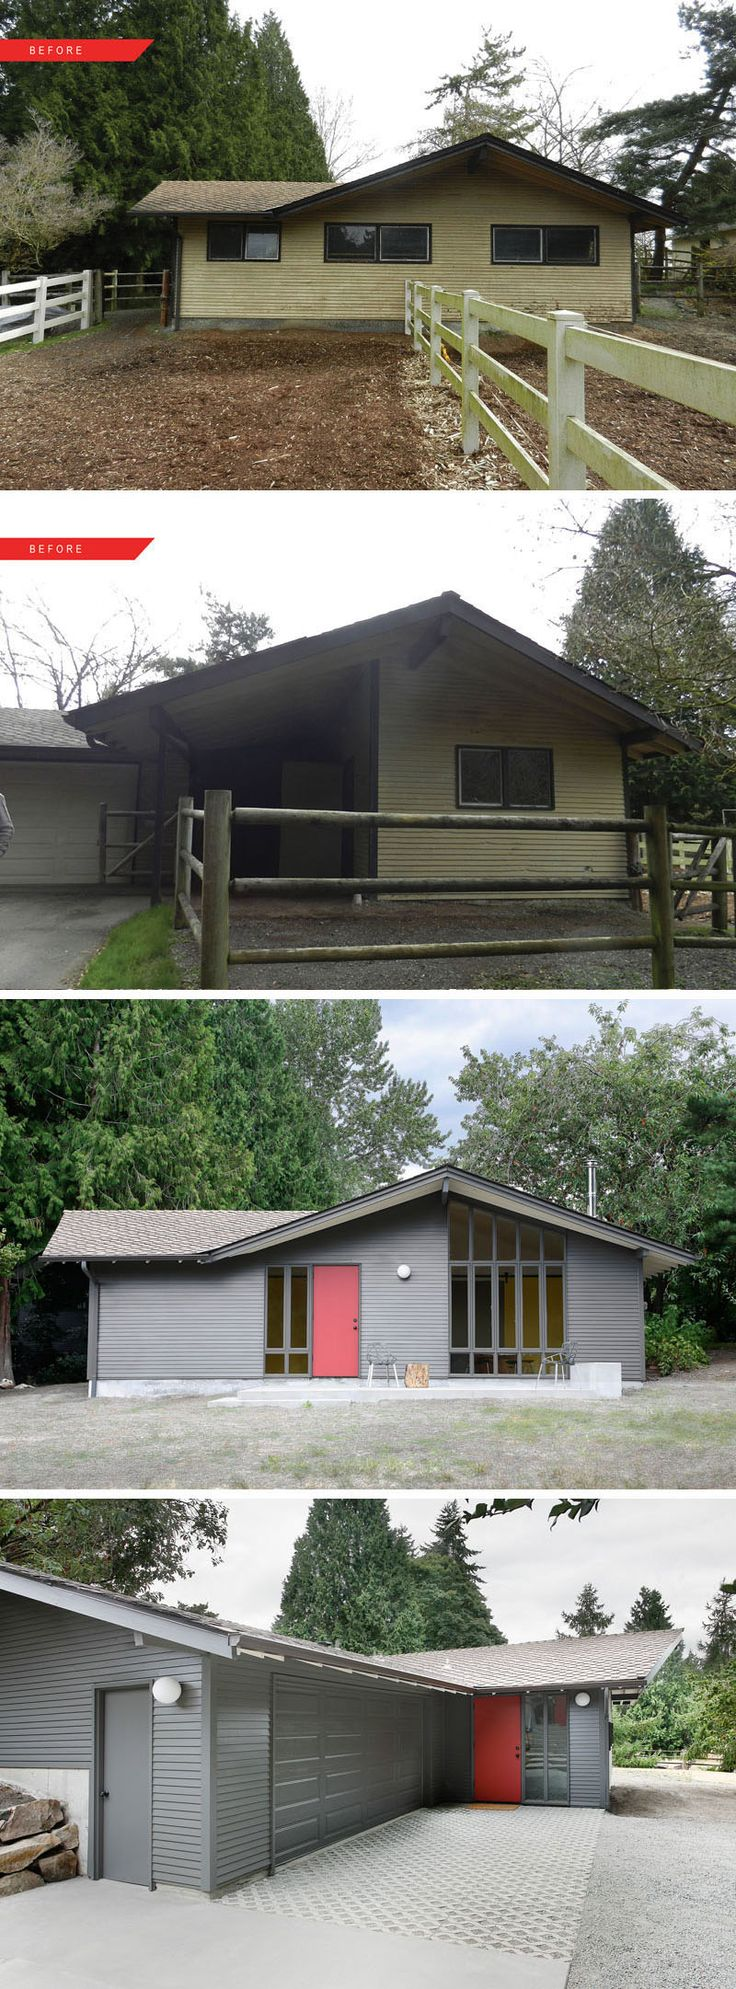 Inspiration for a large modern back porch remodel in san francisco - House Renovation Ideas 17 Inspirational Before After Residential Projects